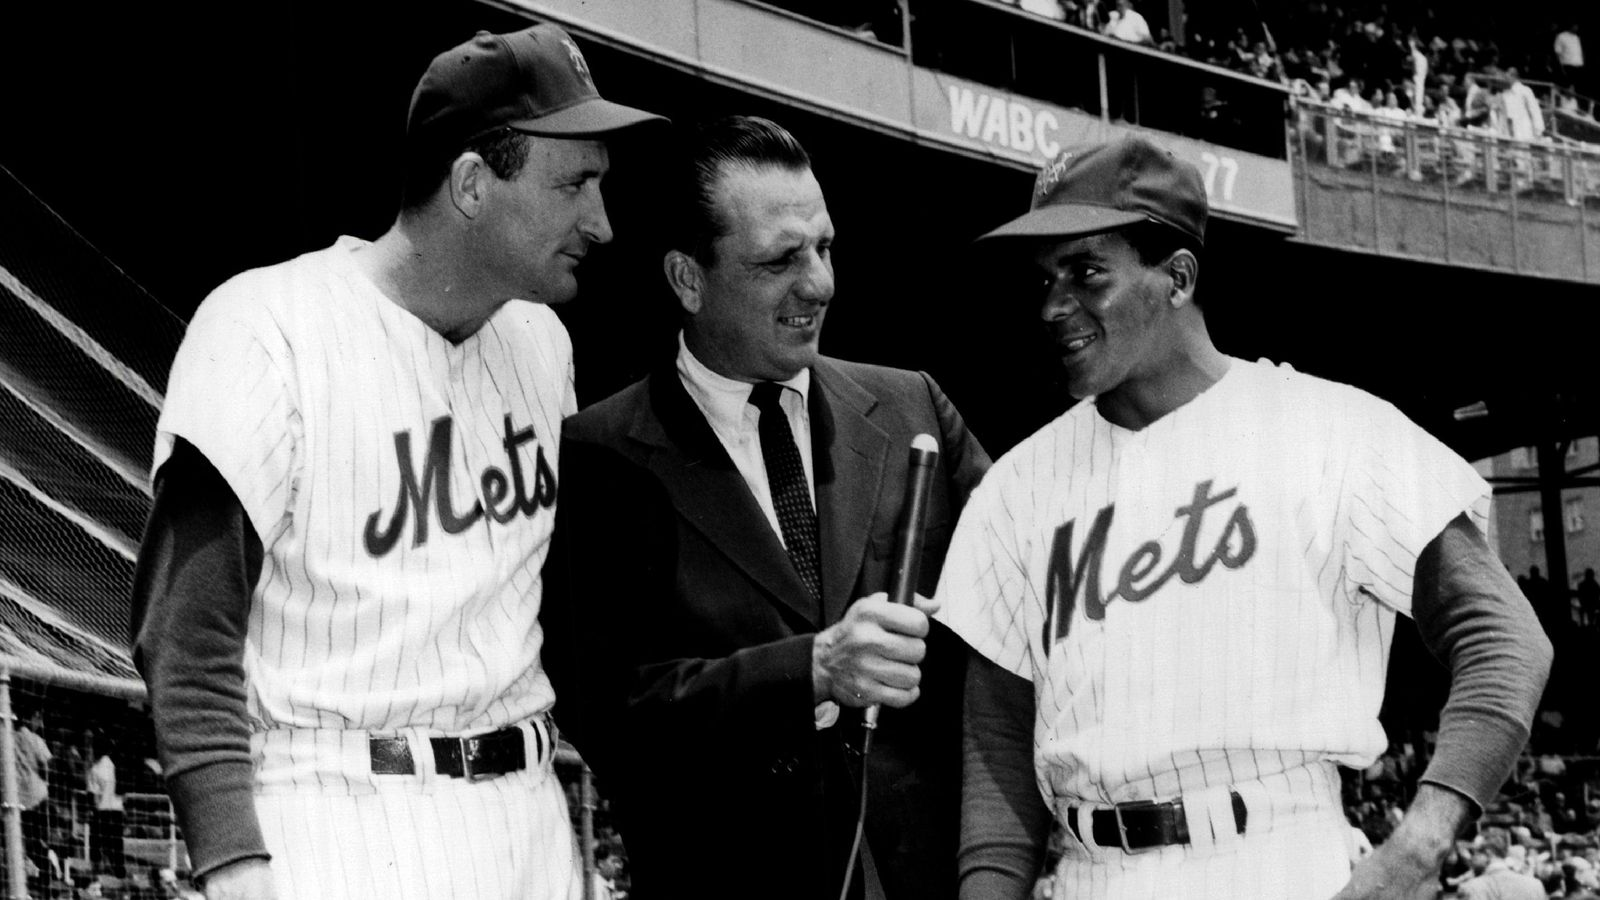 May 12, 1962: The first truly amazin' day in Mets history